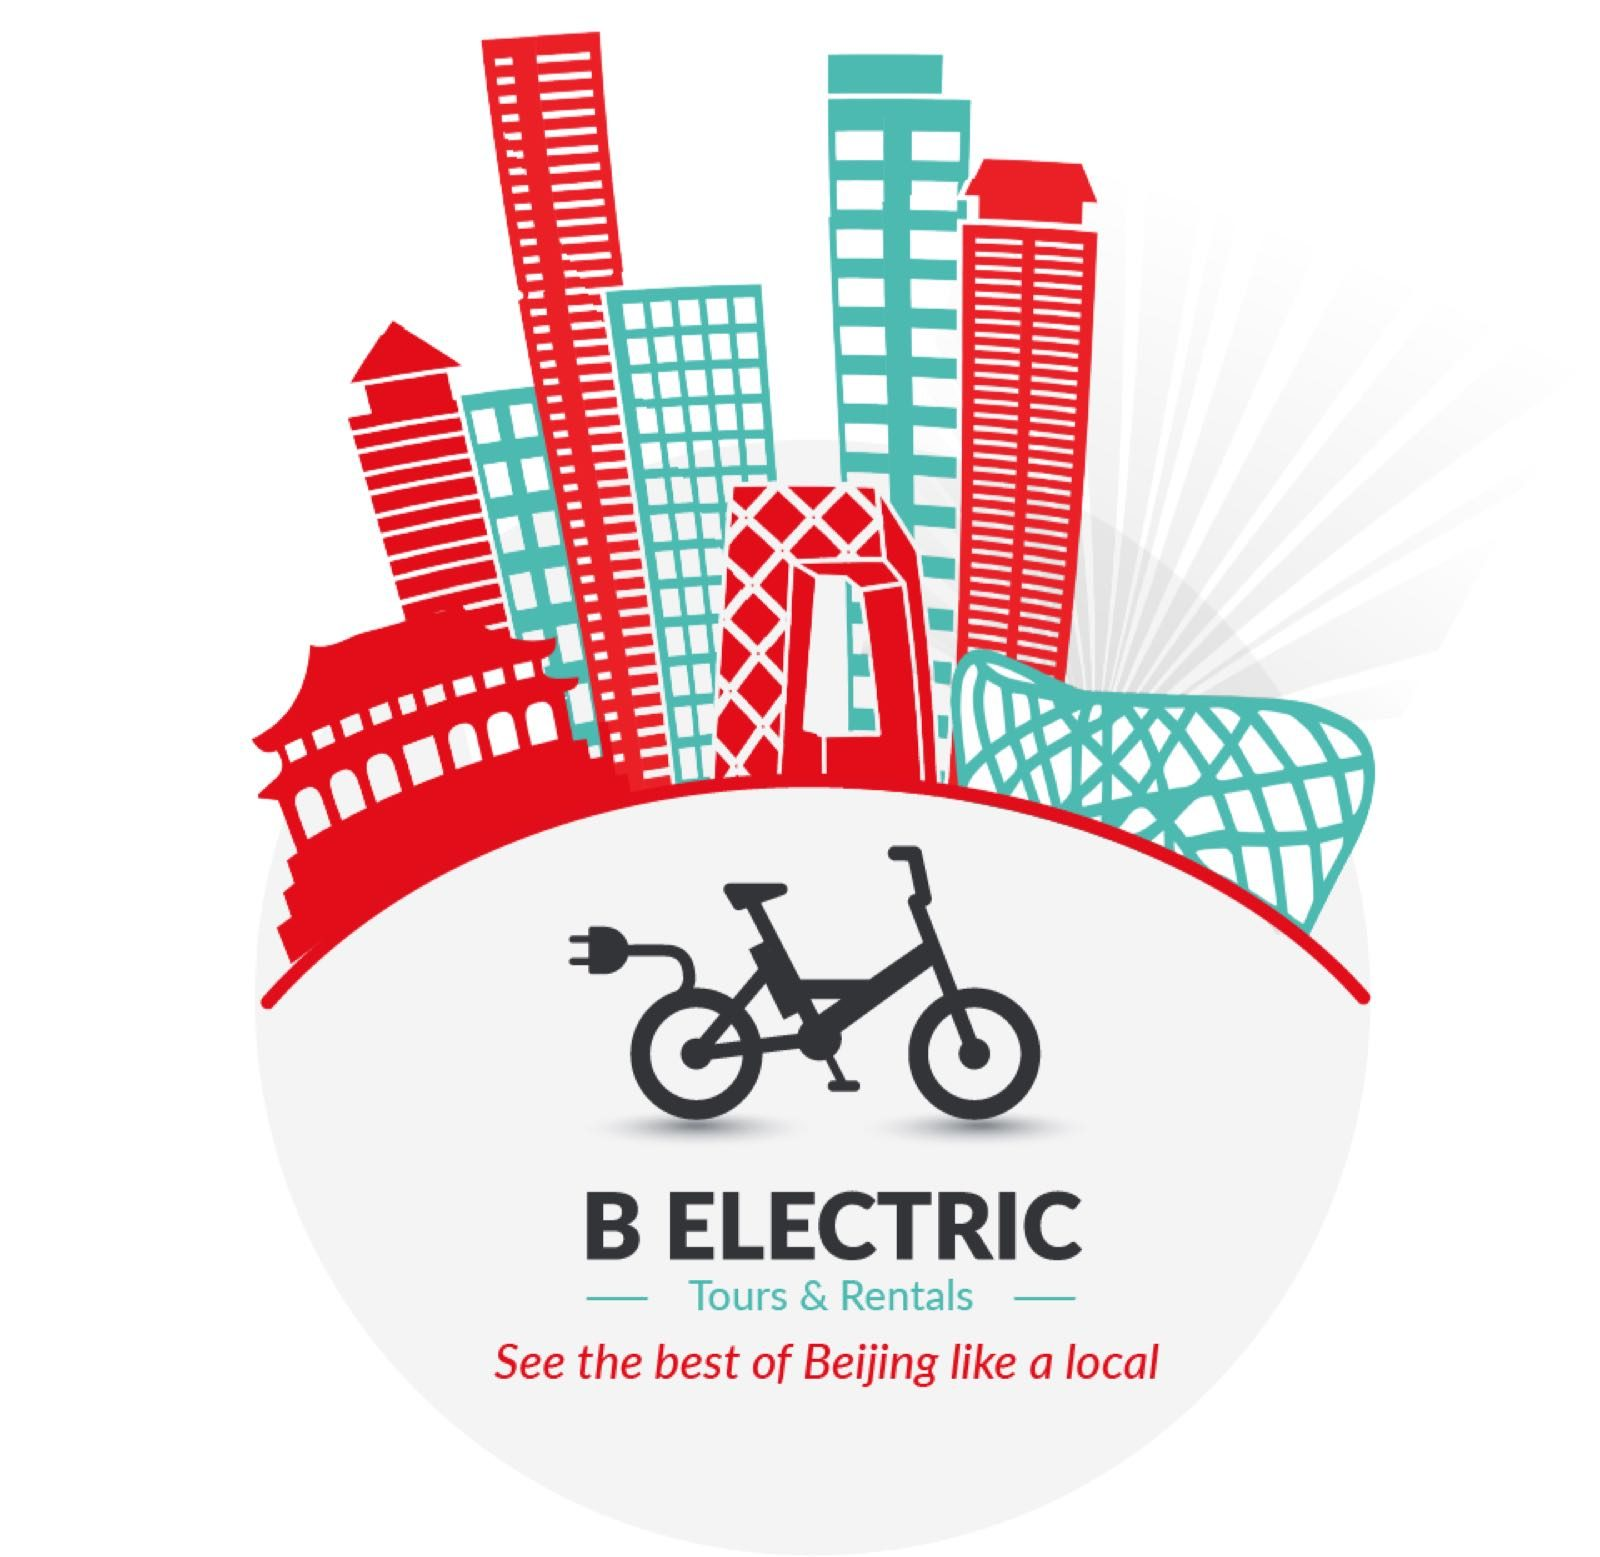 BElectric special offer for members this July!